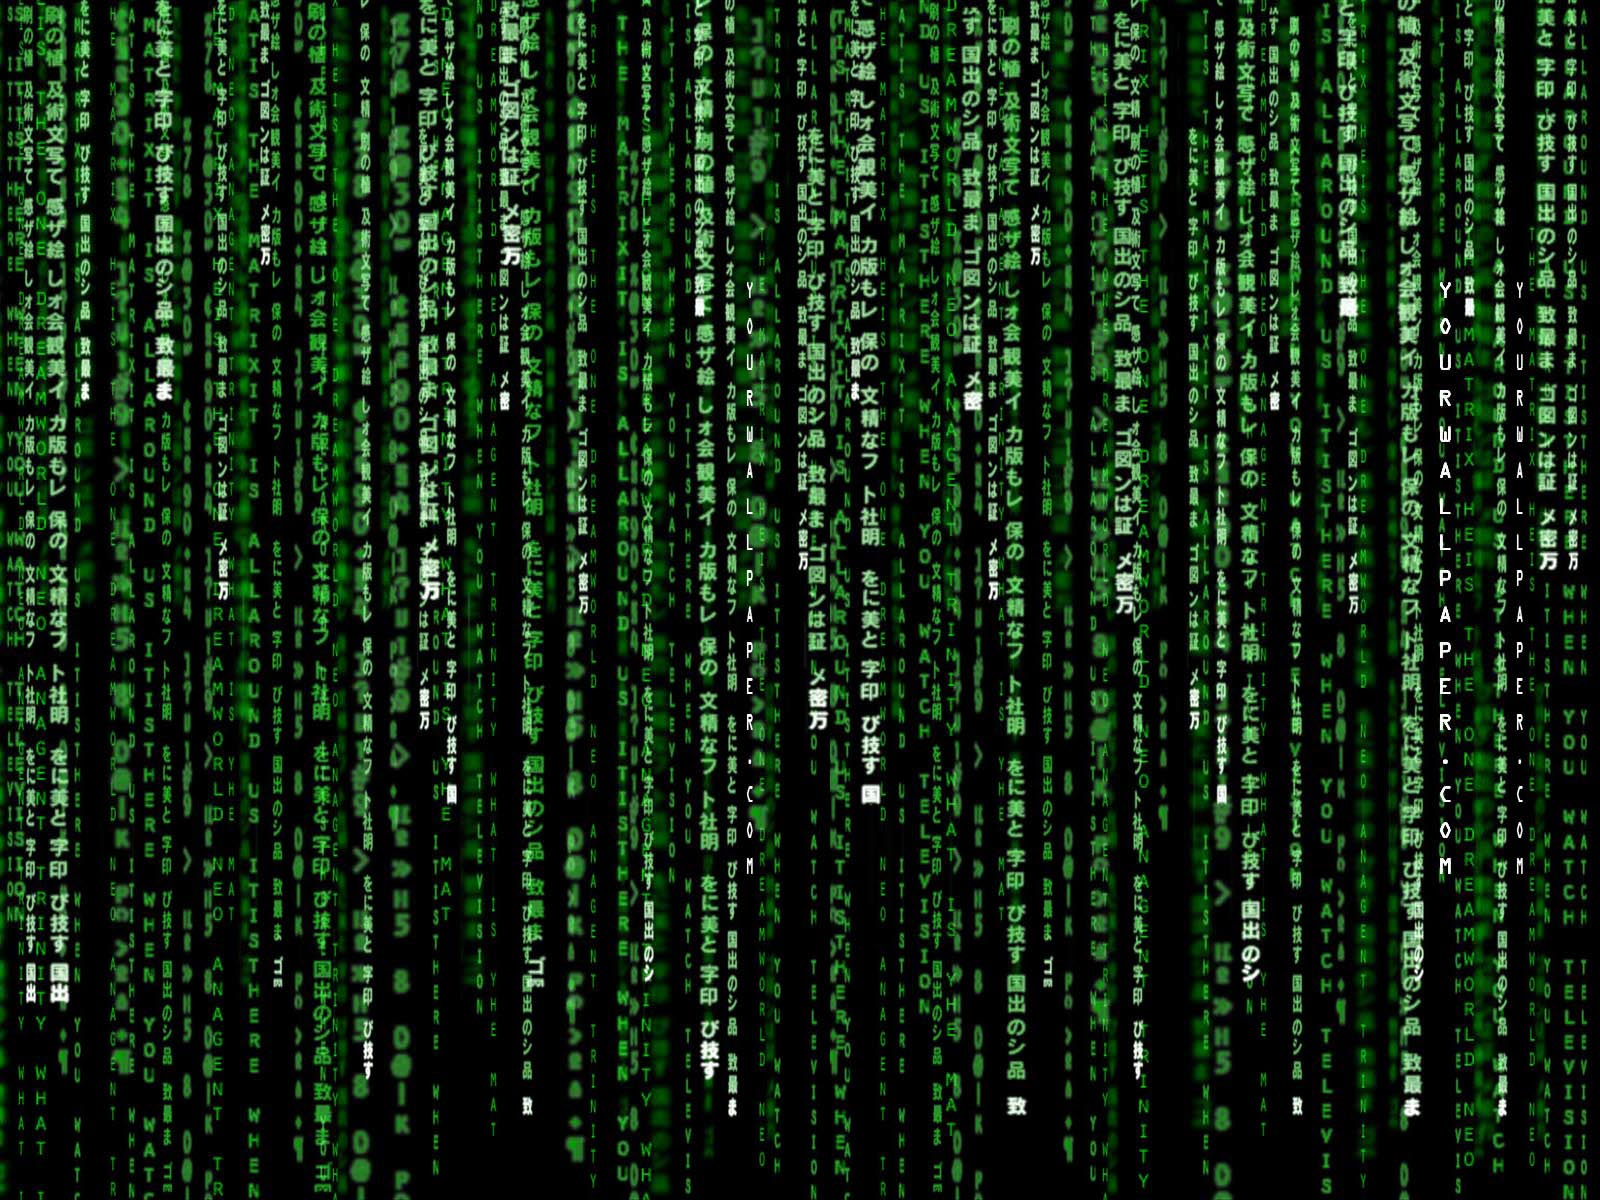 the matrix fondo de pantalla and fondo de escritorio